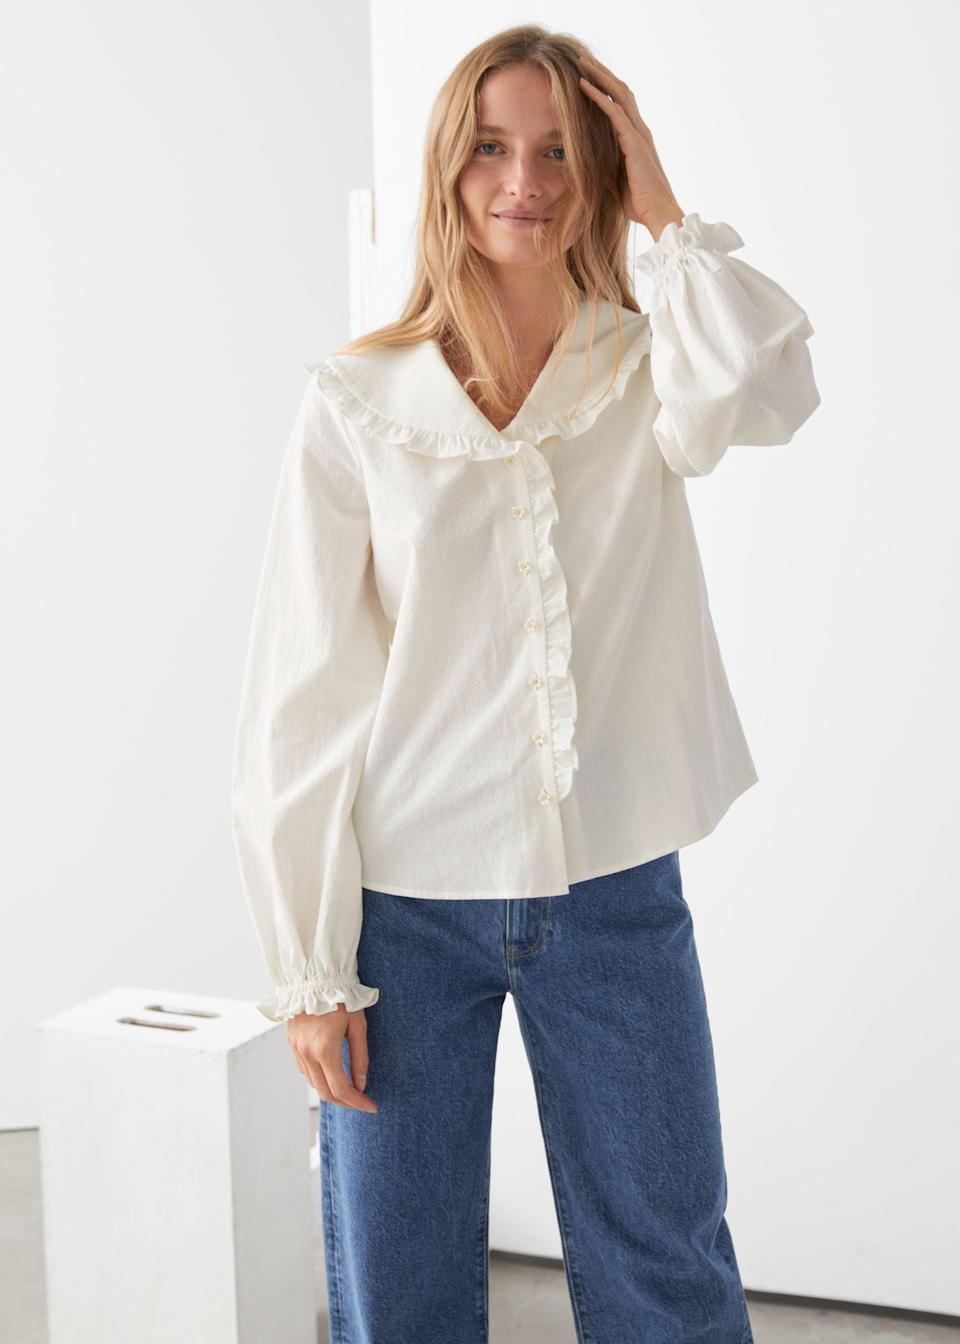 "<br><br><strong>& Other Stories</strong> Boxy Button Up Ruffle Blouse, $, available at <a href=""https://go.skimresources.com/?id=30283X879131&url=https%3A%2F%2Fwww.stories.com%2Fen_usd%2Fclothing%2Fblouses-shirts%2Fblouses%2Fproduct.boxy-button-up-ruffle-blouse-white.0910417001.html"" rel=""nofollow noopener"" target=""_blank"" data-ylk=""slk:& Other Stories"" class=""link rapid-noclick-resp"">& Other Stories</a>"